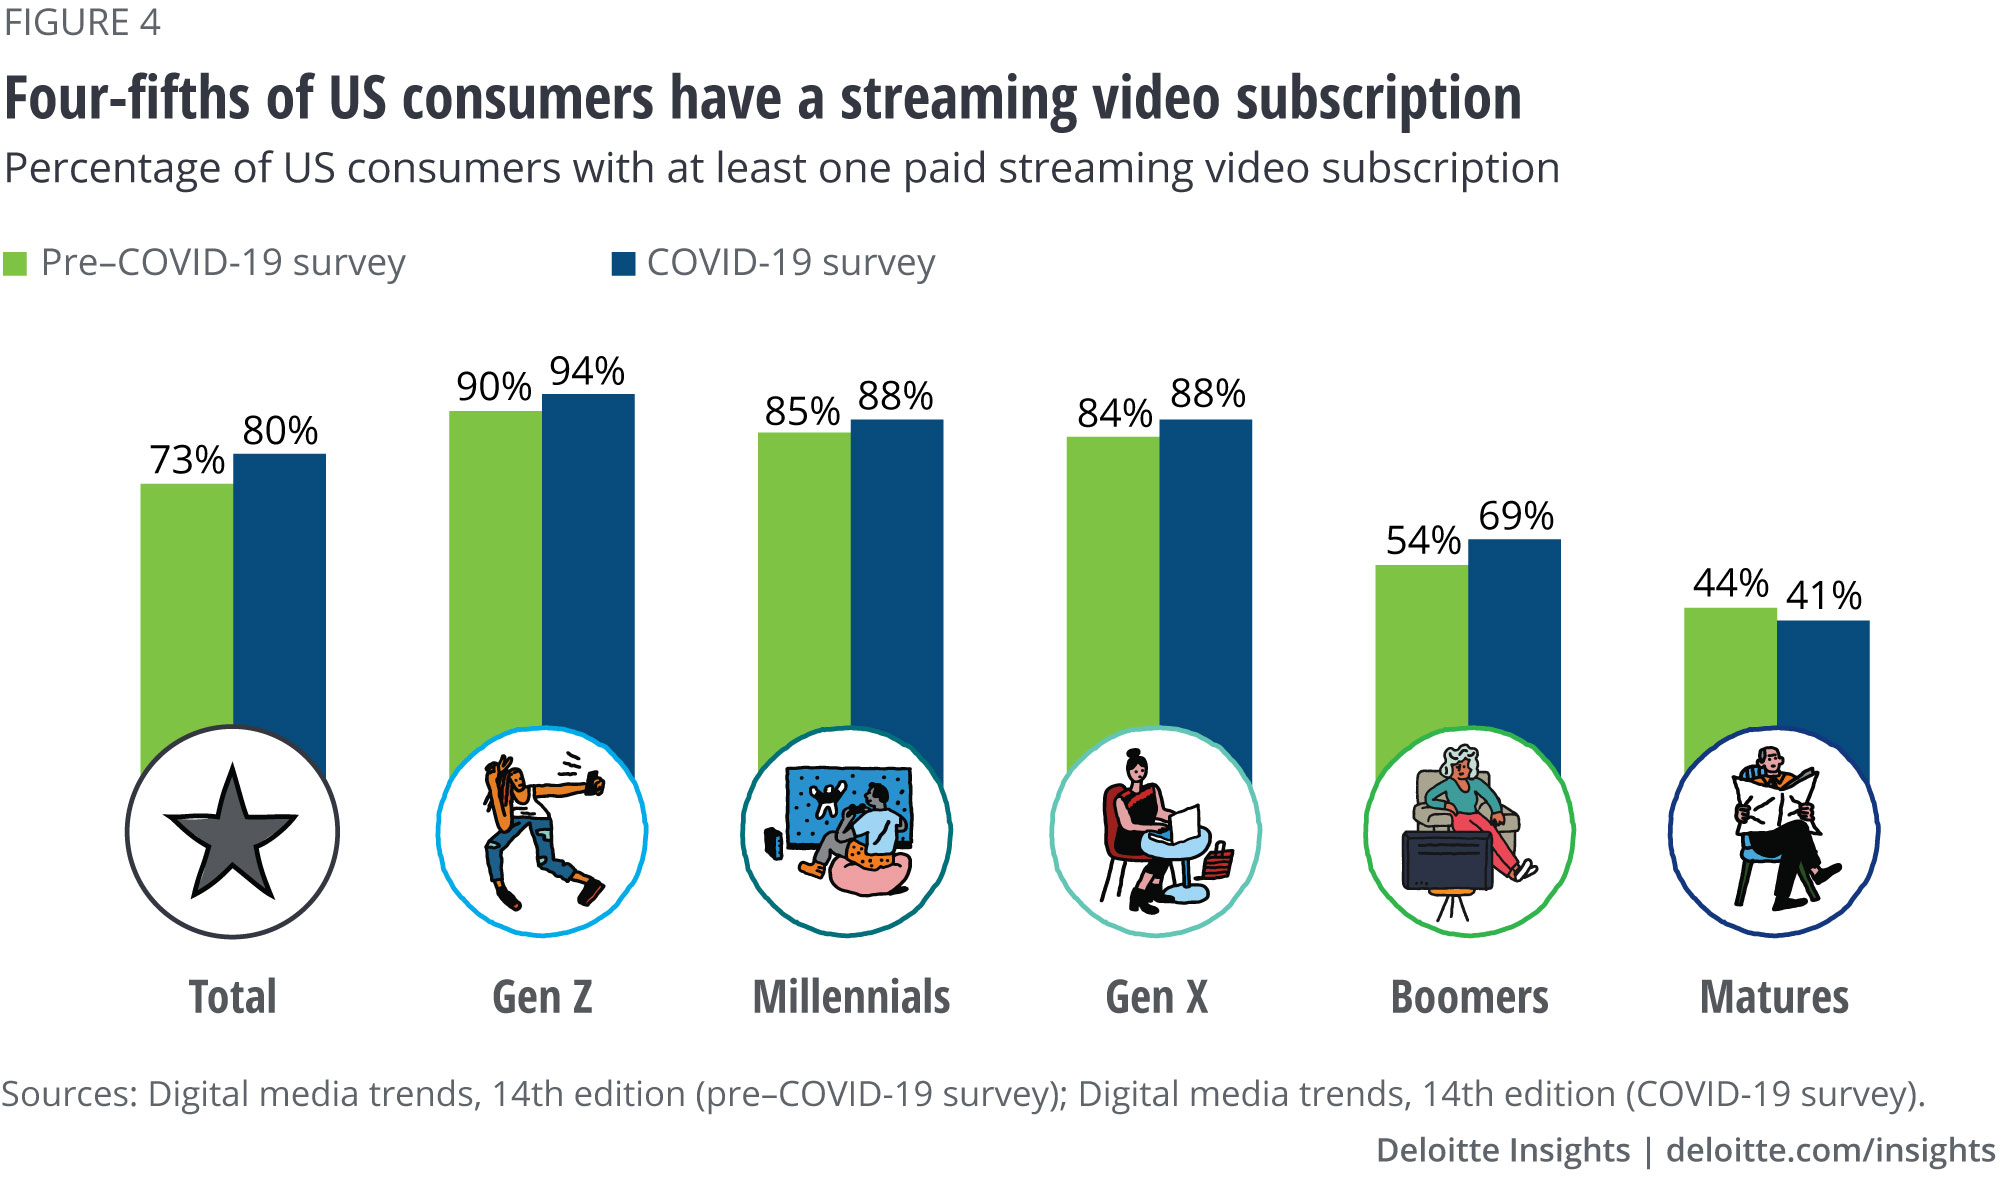 Four-fifths of US households have a streaming video subscription